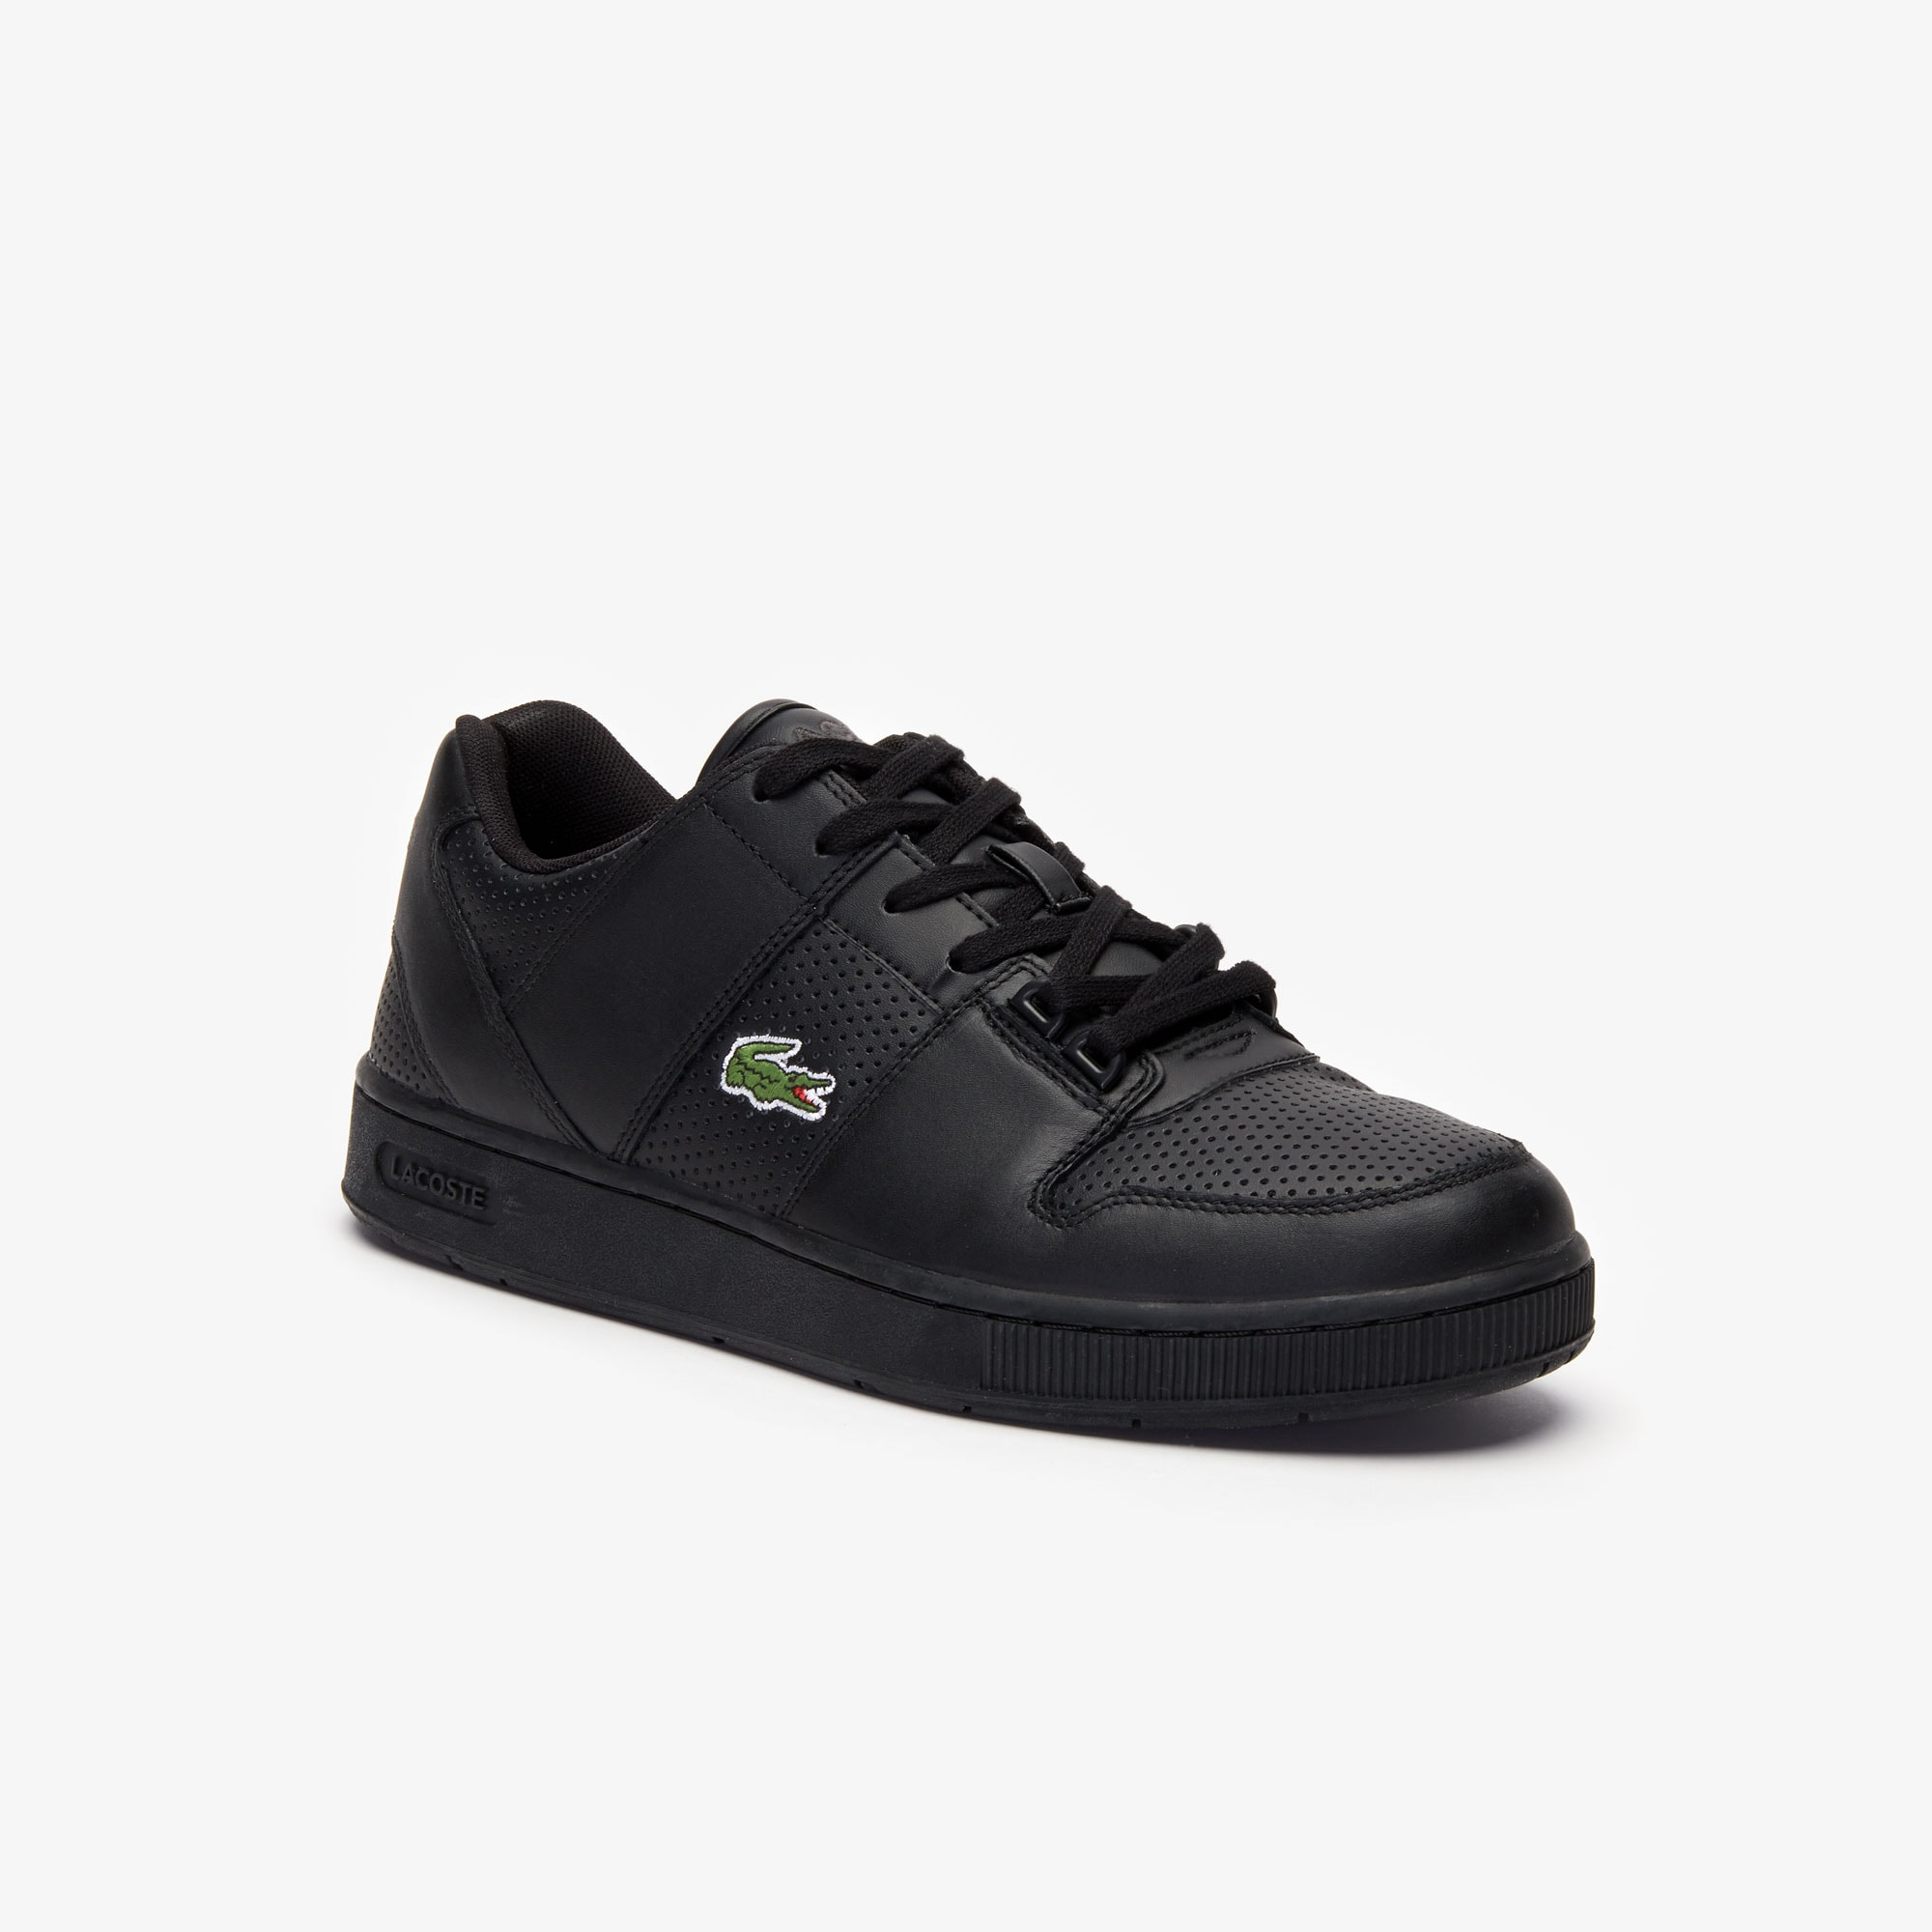 Men's Thrill Leather Sneakers | LACOSTE